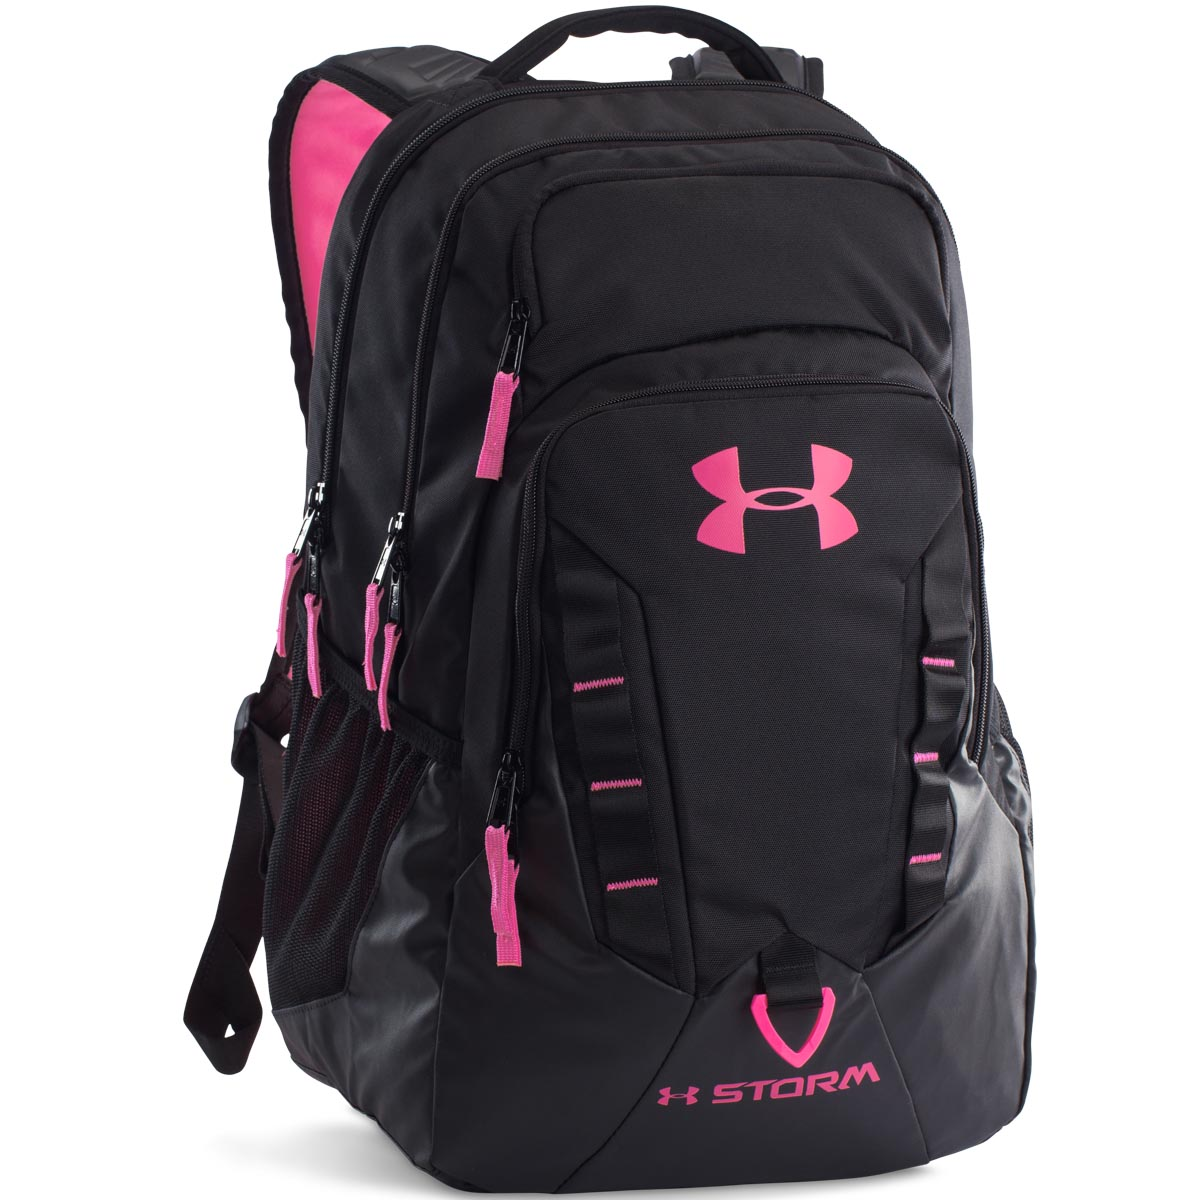 huge selection of 216aa efc4e under armour storm backpacks cheap   OFF50% The Largest Catalog Discounts